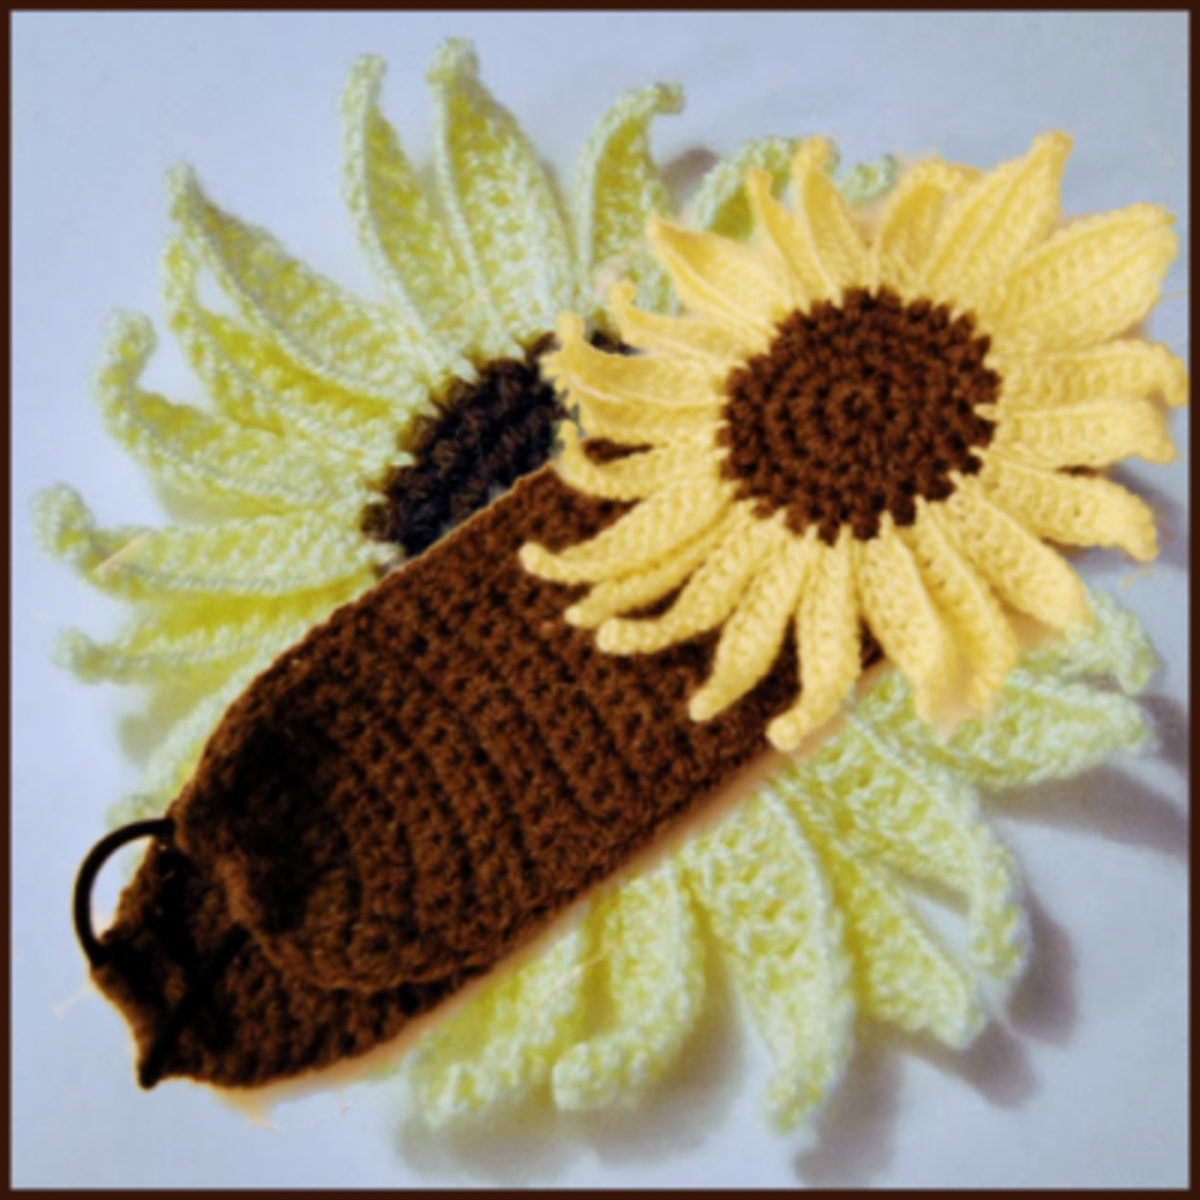 Elasticated sunflower headband to brighten up those cold days.